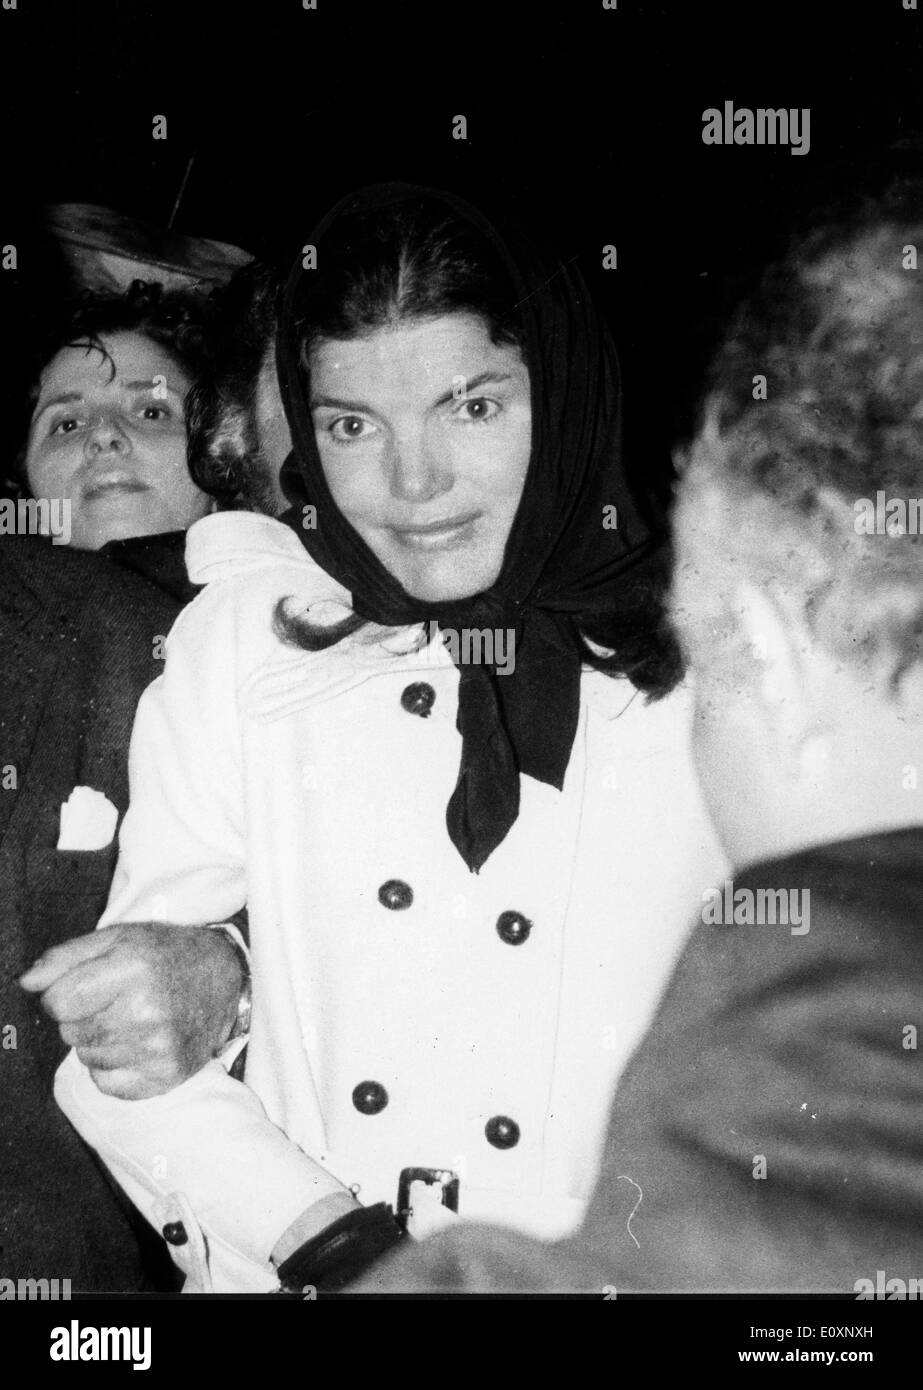 Jacqueline Kennedy Onassis with husband Aristotle Onassis (not shown) - Stock Image